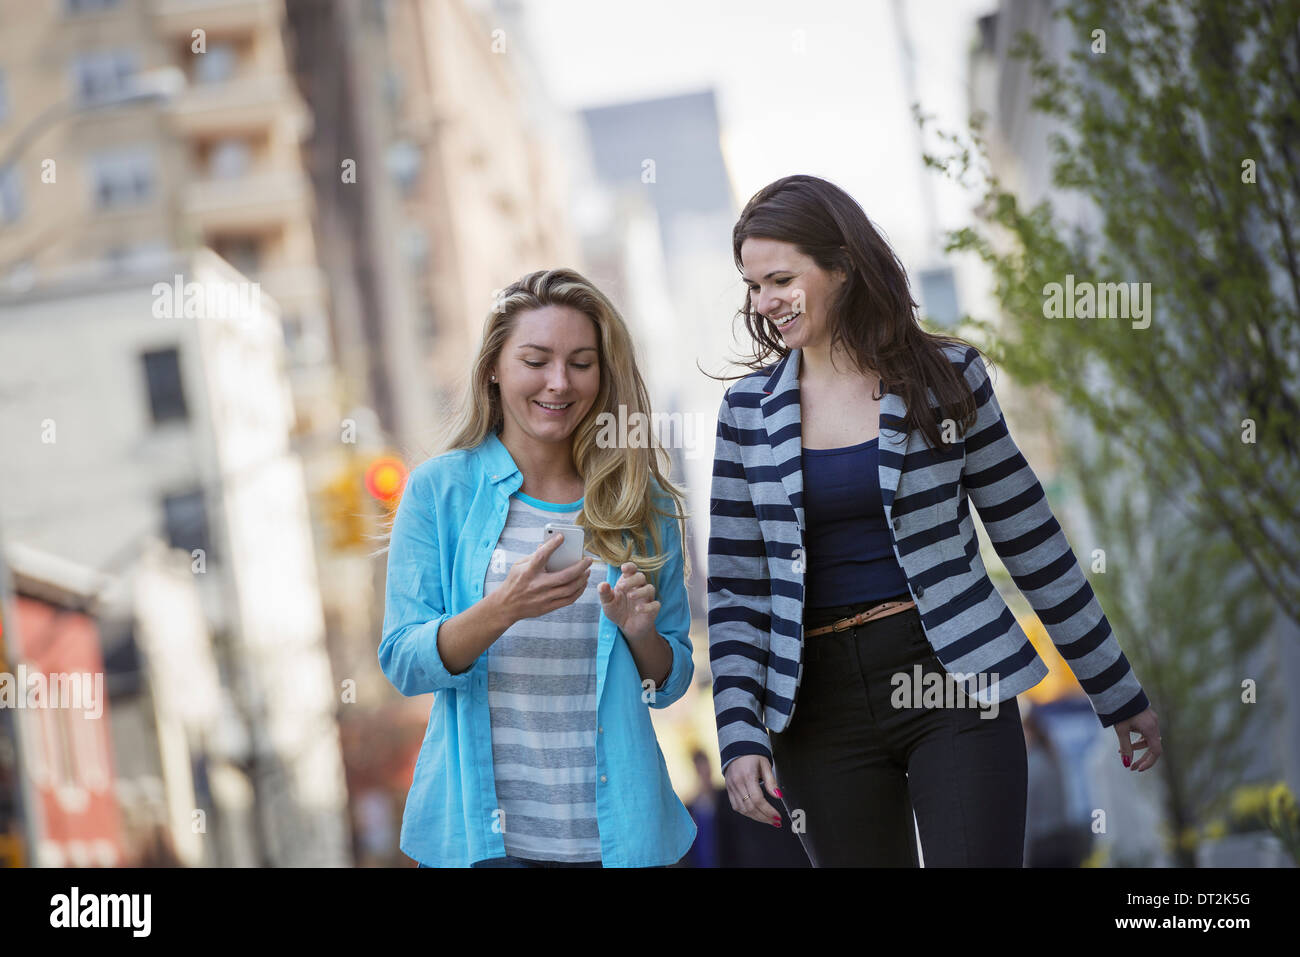 People outdoors in New York city in spring time Two women walking one checking her cell phone Stock Photo